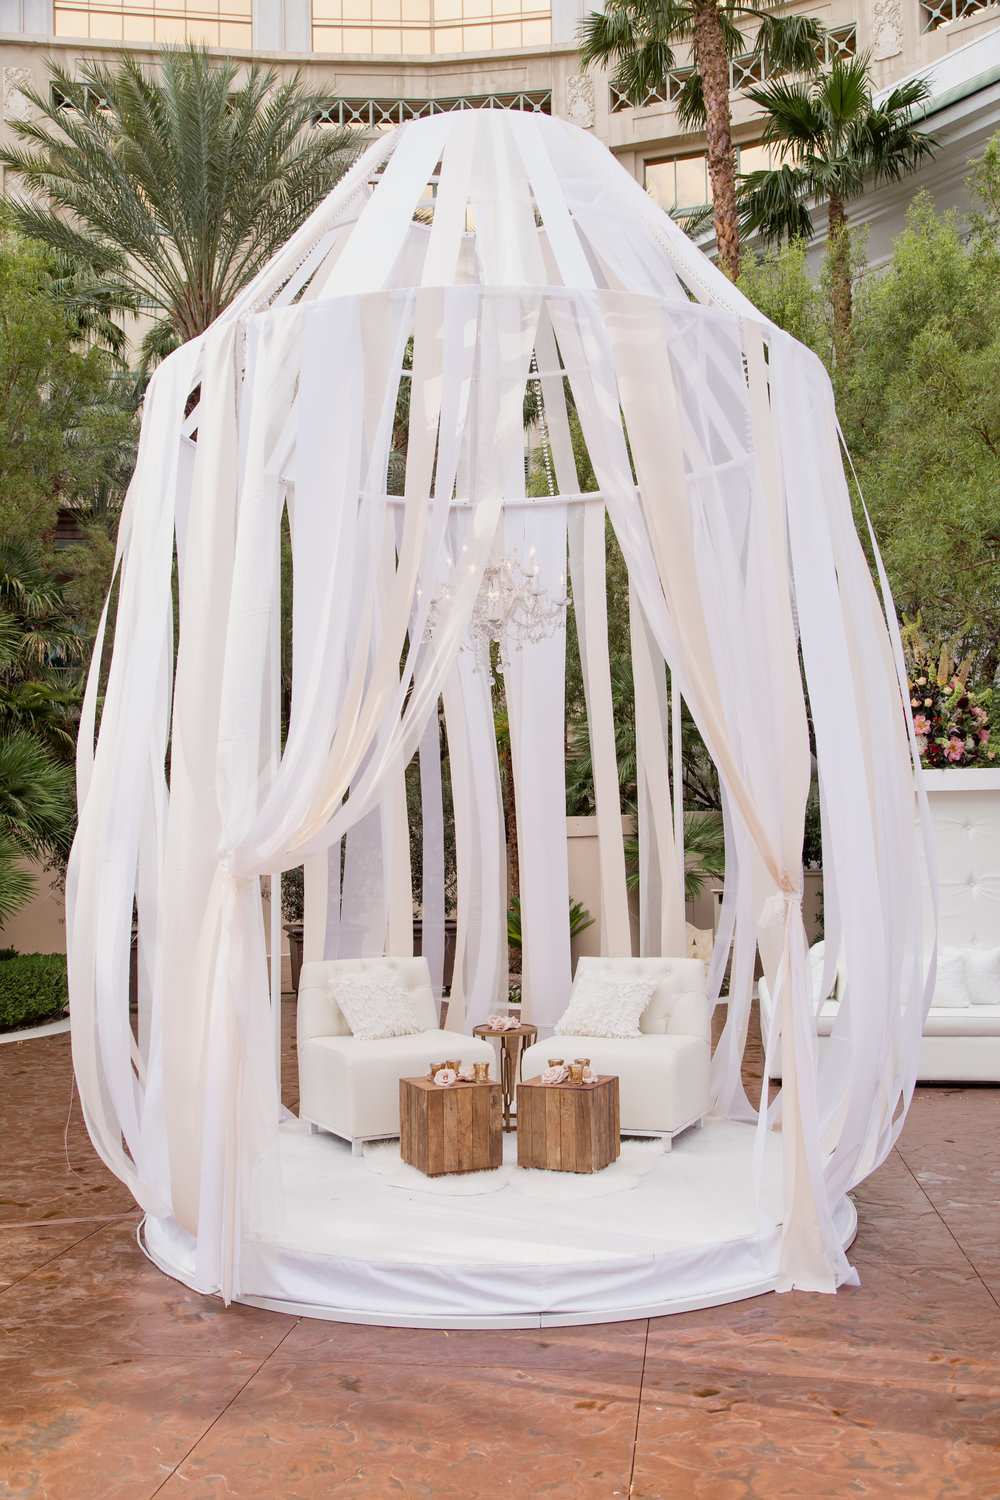 Ceremony birdcages with ribbons at luxury, upscale destination wedding. Destination Wedding Planner  Andrea Eppolito  · Photos by  Adam Frazier Photography  · Floral and Decor by  Destinations by Design  ·  Lighting by  LED Unplugged  · Venue  · Invitations  Ceci New York   ·  Menus by  Alligator Soup